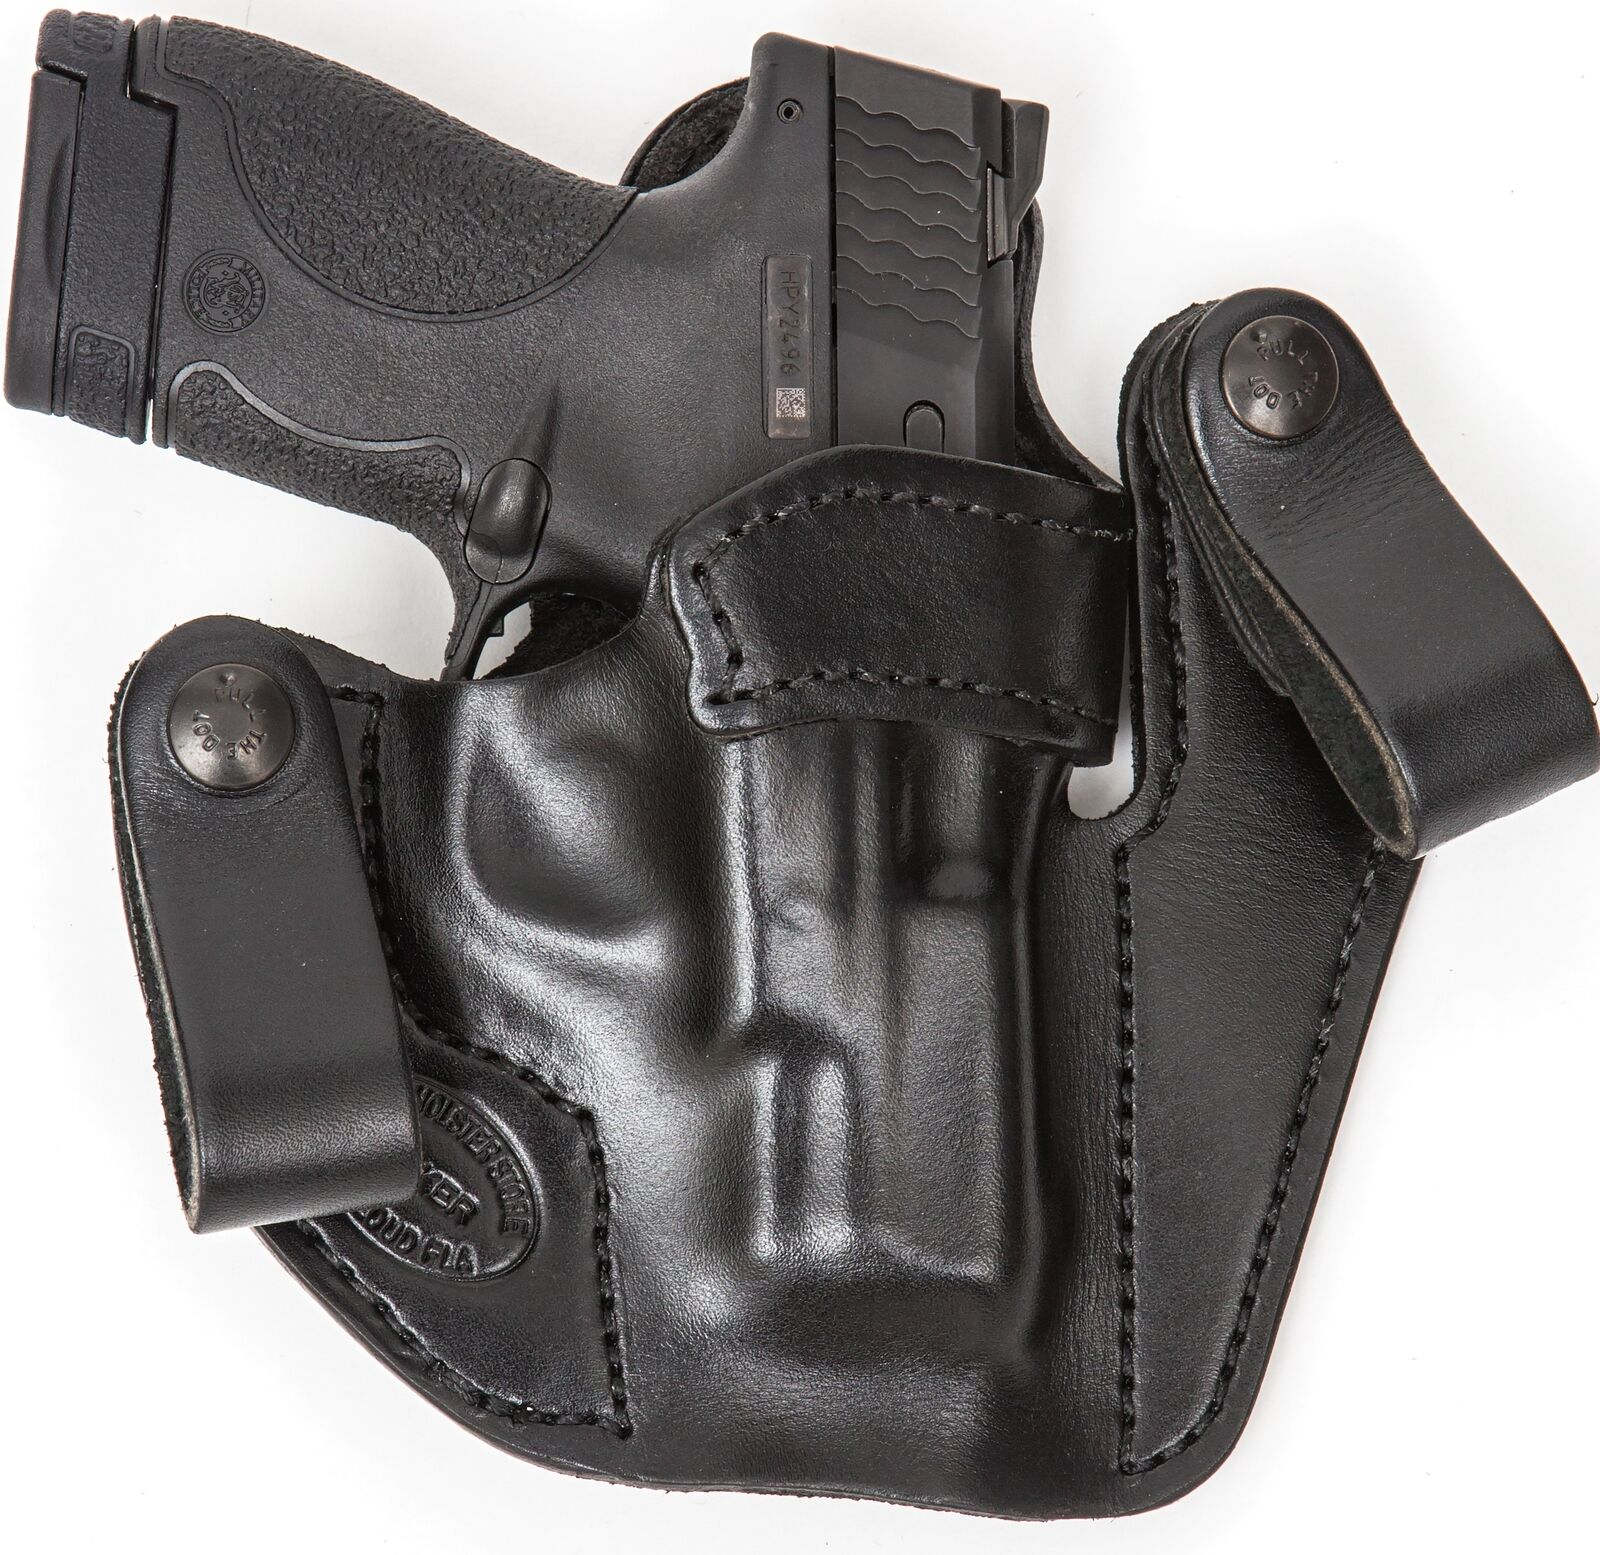 XTREME CARRY CARRY CARRY RH LH IWB Leder Gun Holster For S&W Compact M 2.0 51f565